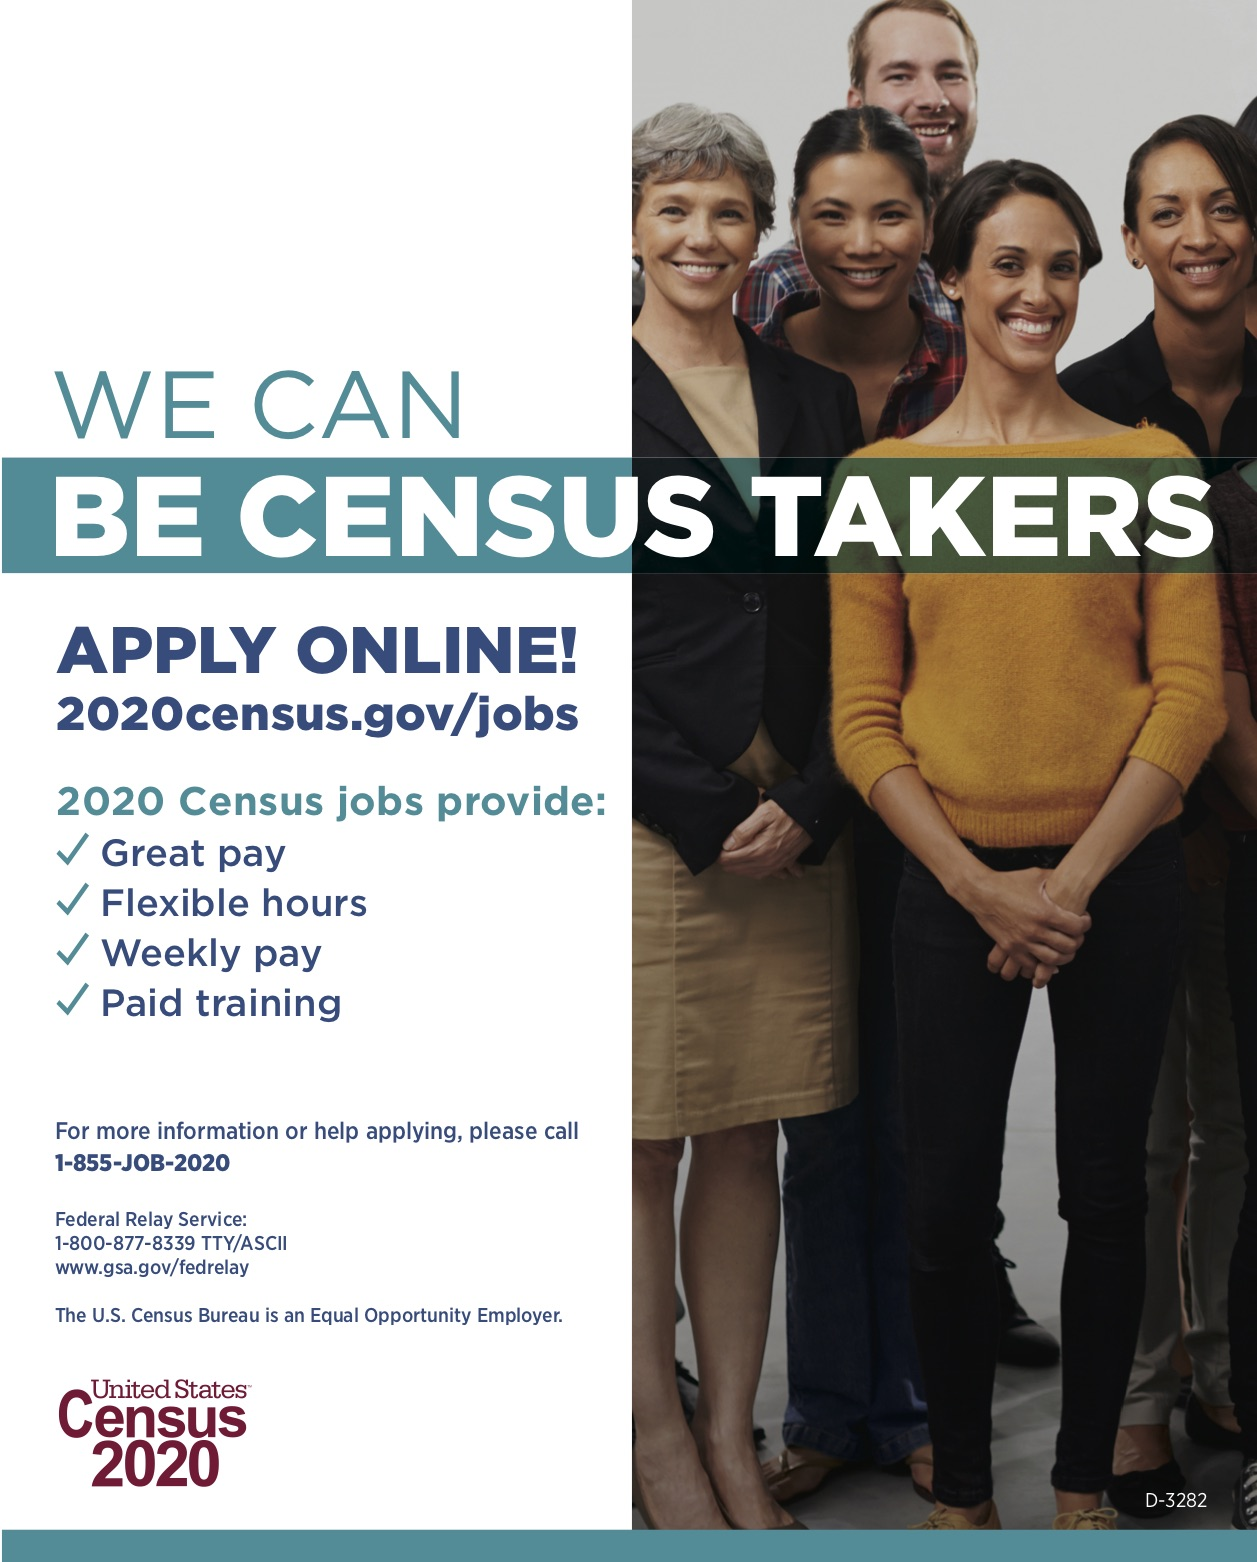 Five smiling people. Text: WE CAN BE CENSUS TAKERS. APPLY ONLINE! 2020census.gov/jobs. 2020 Census jobs provide: Great pay, Flexible hours, Weekly pay, Paid training. For more information or help applying, please call 1-855-JOB-2020. Federal Relay Service: 1-800-877-8339 TTY/ASCII. www.gsa.gov/fedrelay. The U.S. Census Bureau is an Equal Opportunity Employer. United States Census 2020.